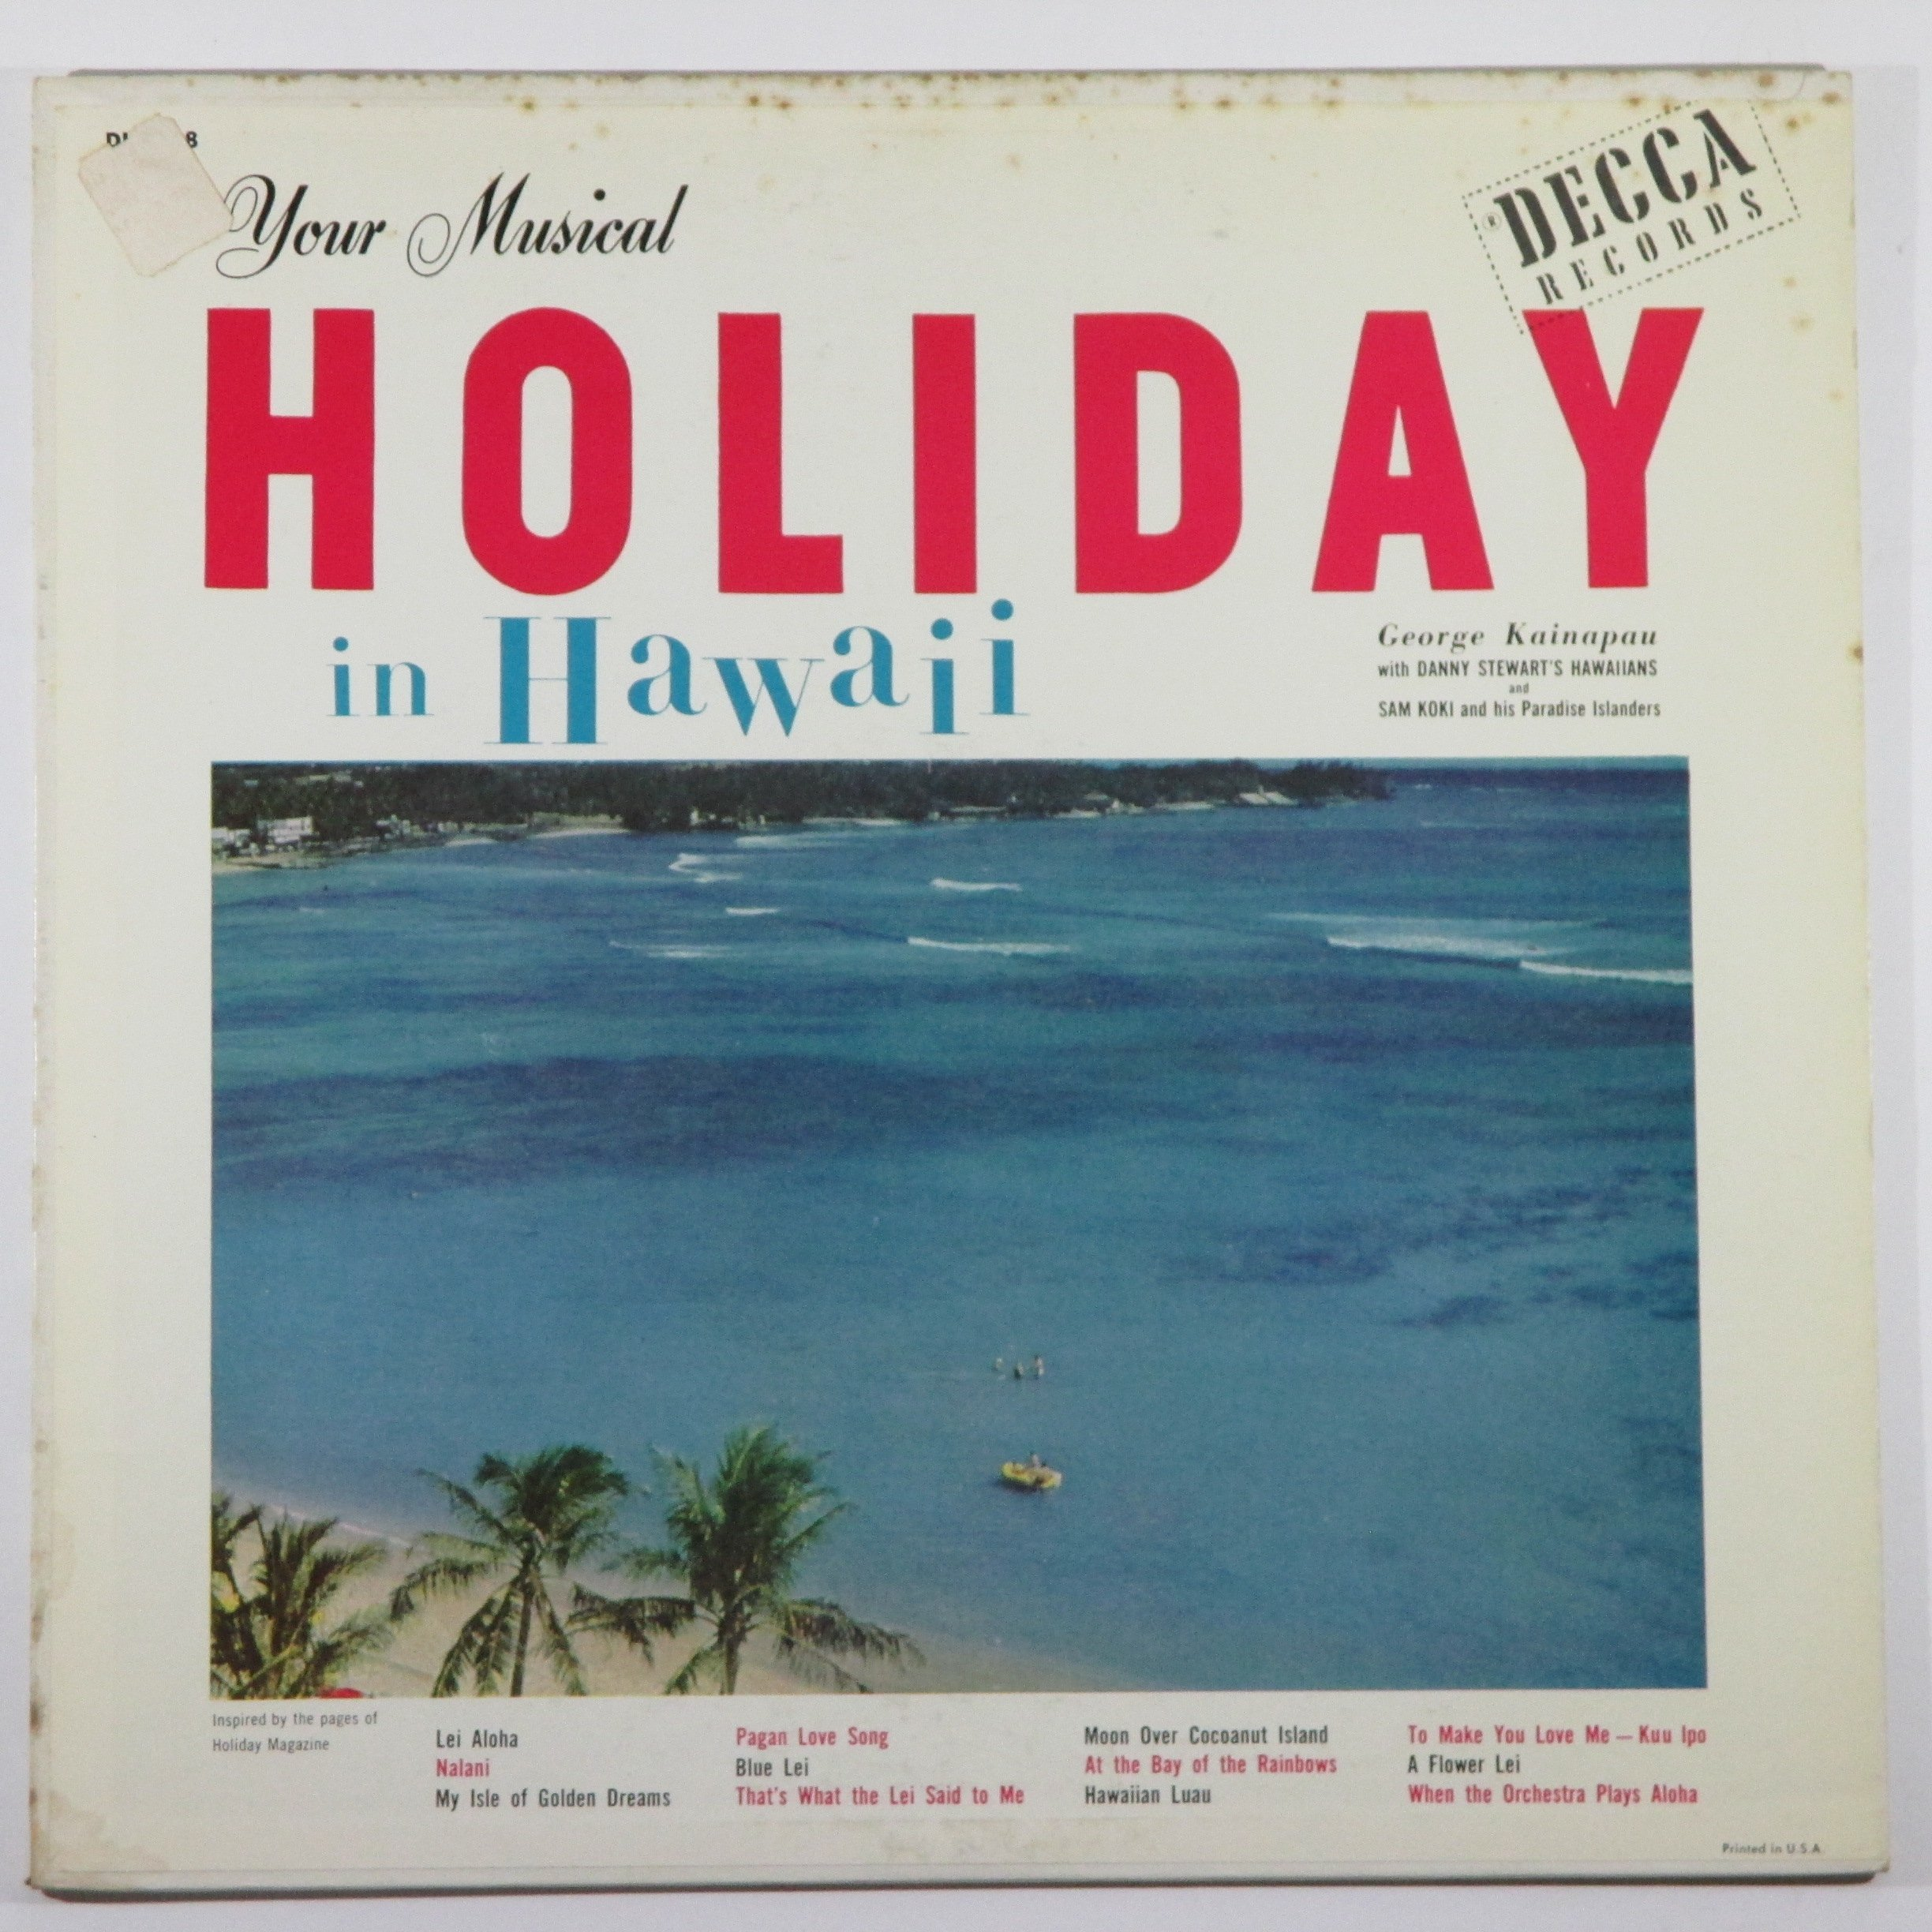 Your Musical Holiday in Hawaii by Decca DL 8138